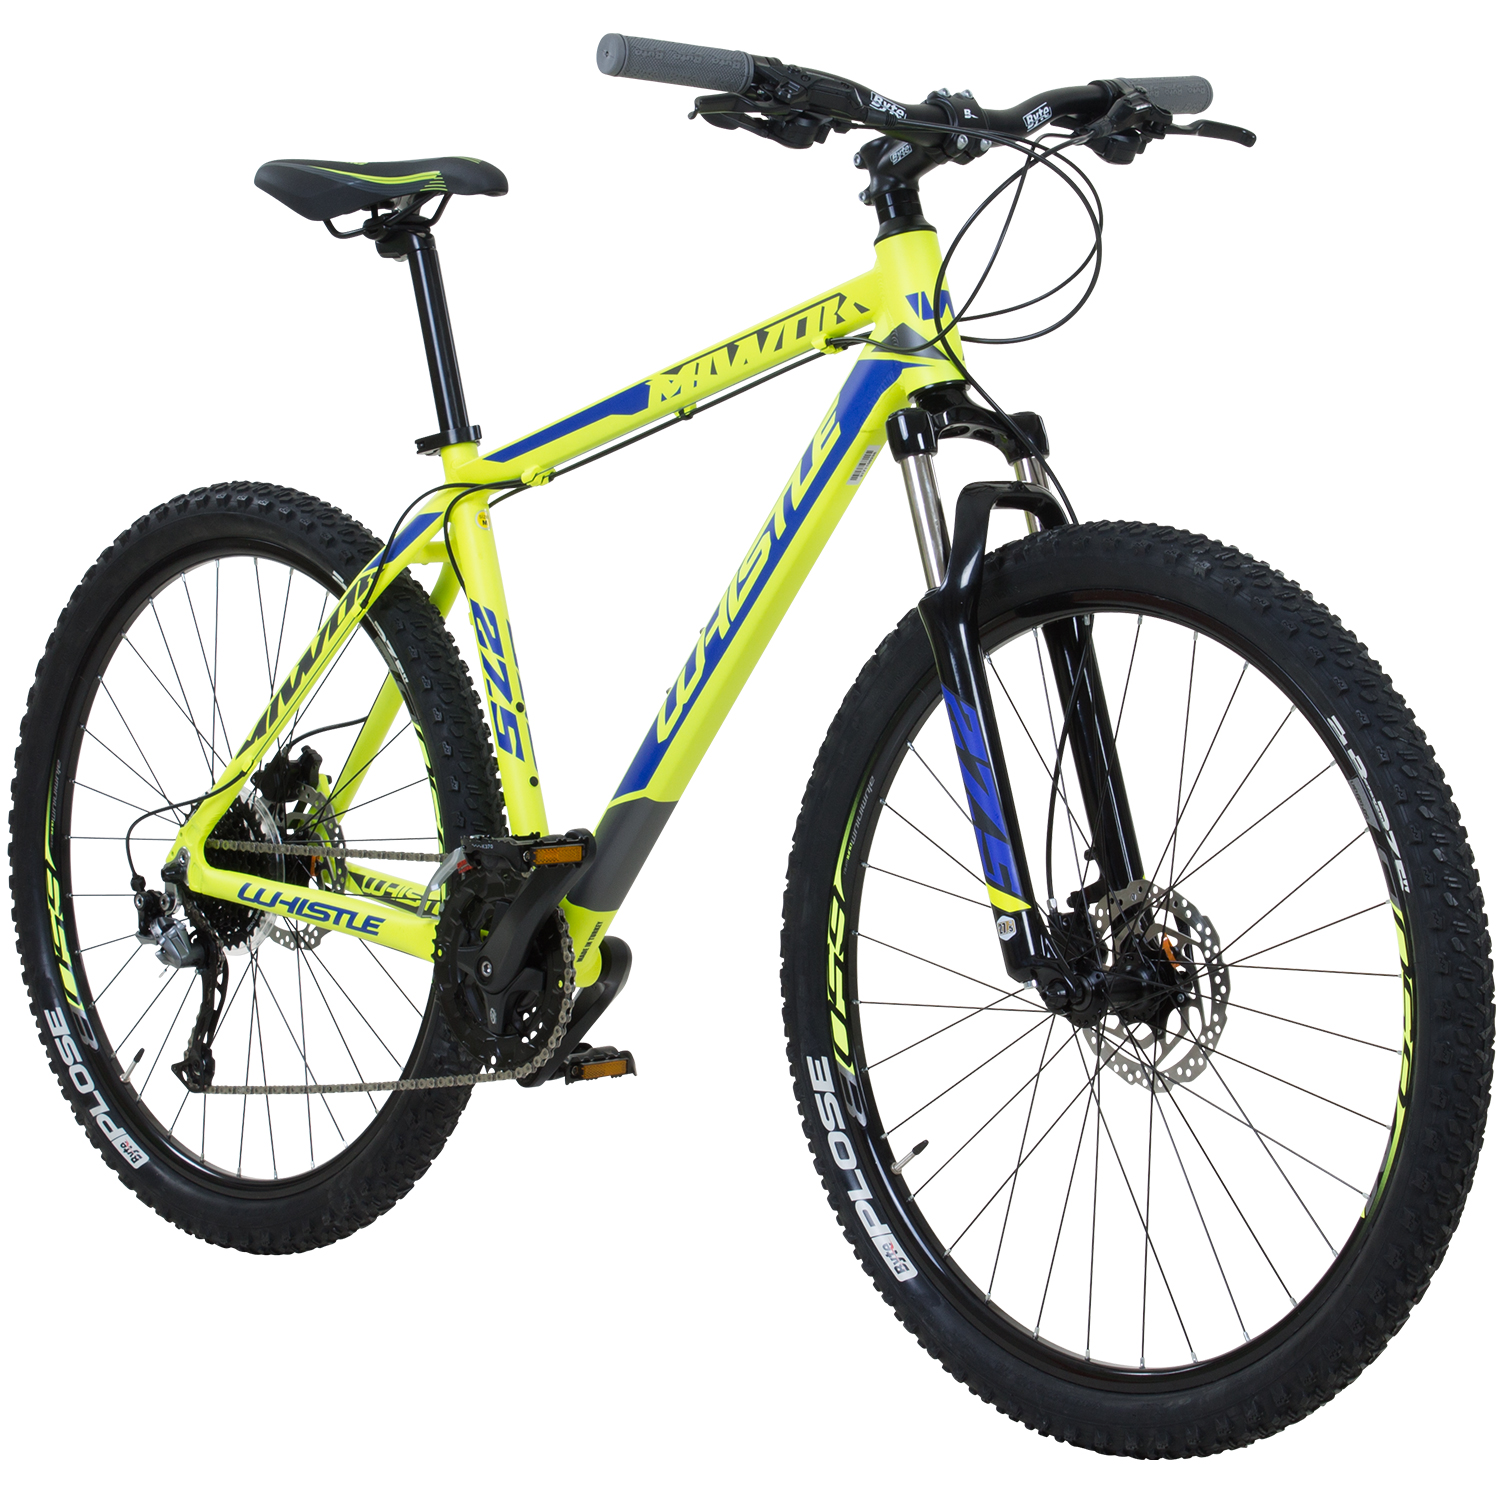 whistle miwok 1836 27 5 zoll mountainbike rahmengr e 46. Black Bedroom Furniture Sets. Home Design Ideas